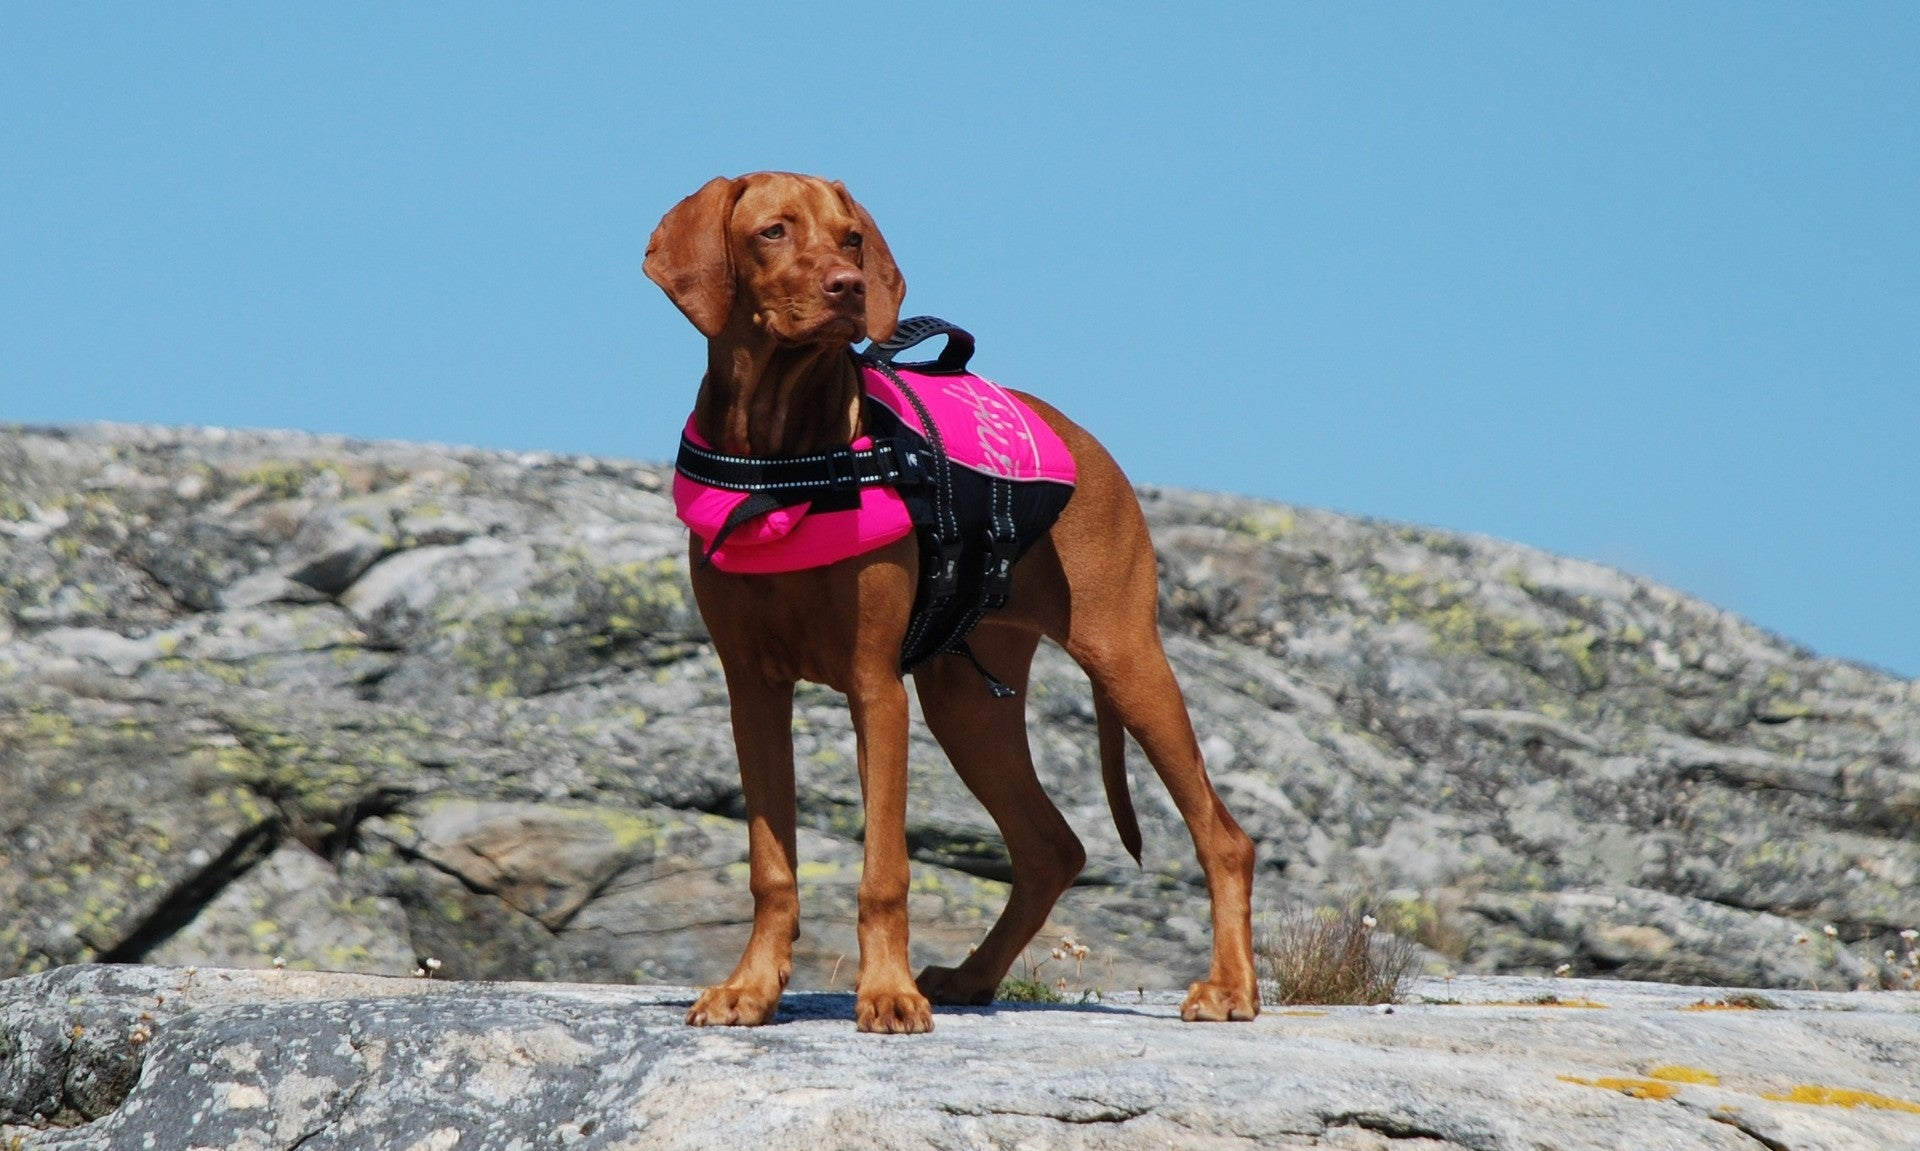 Dog in a life jacket